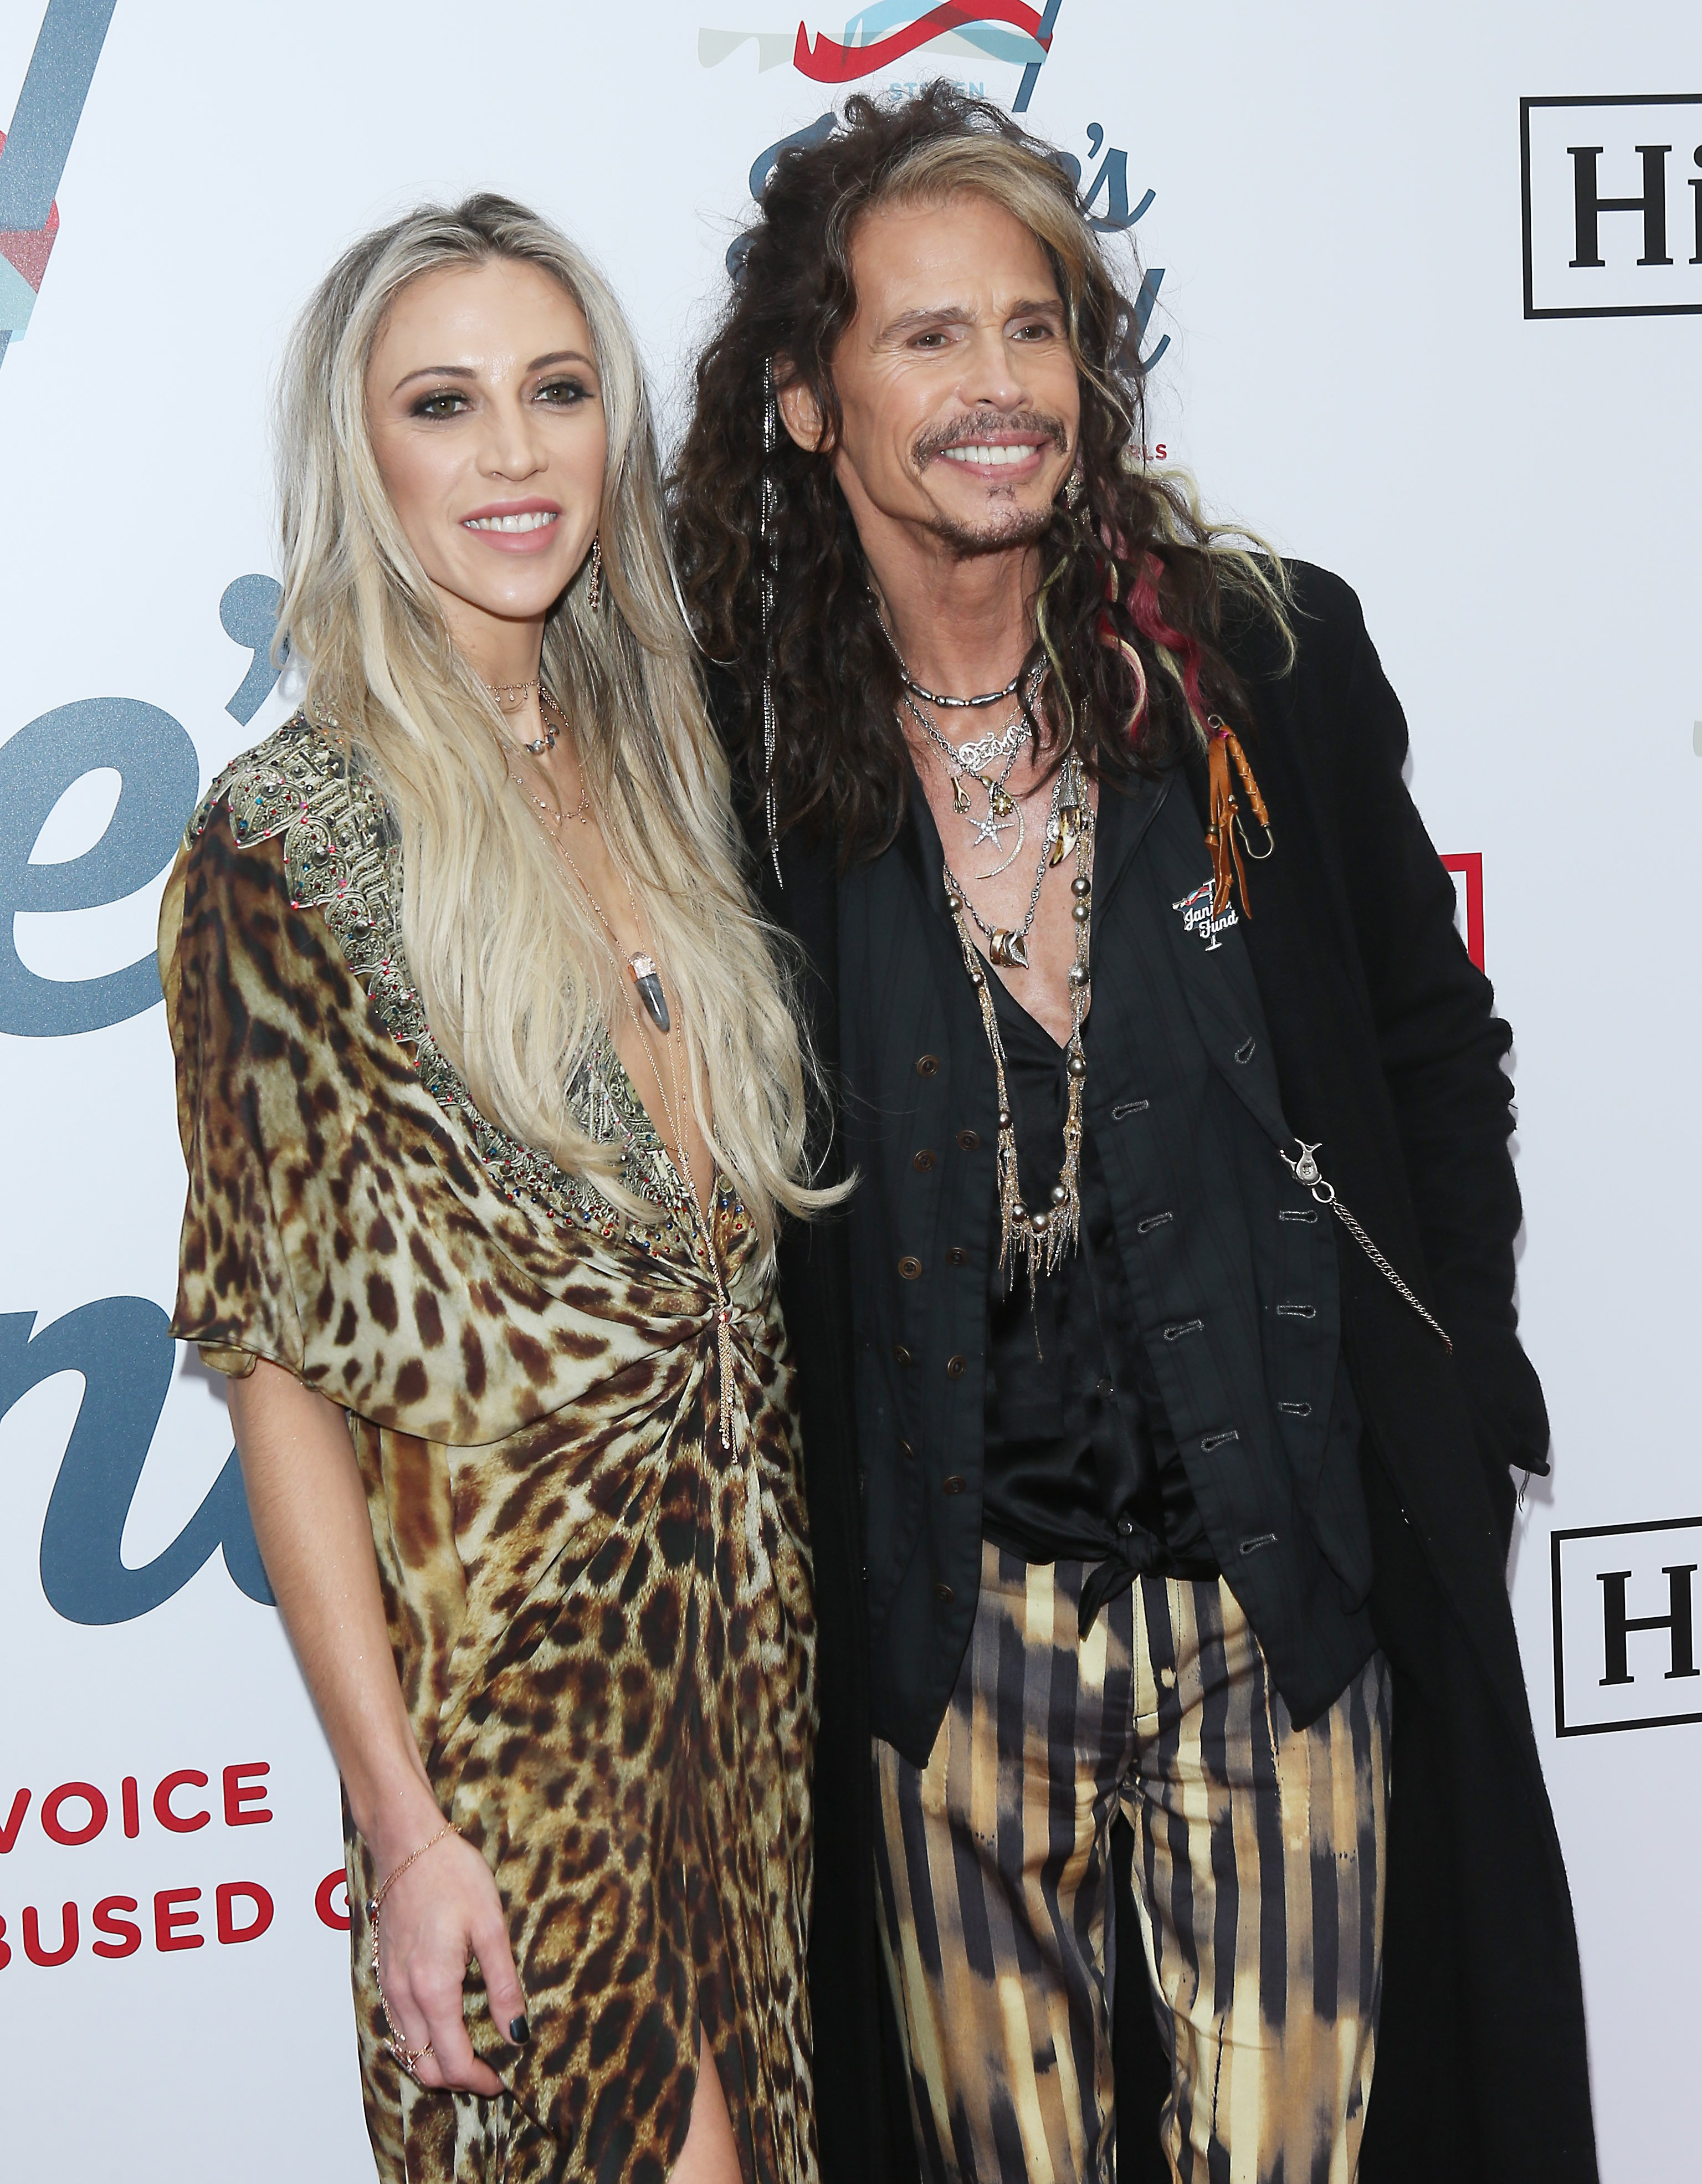 Steven Tyler and Aimee Preston attend Steven Tyler's GRAMMY Awards viewing party benefiting Janie's Fund held at Raleigh Studios on February 10, 2019, in Los Angeles, California. | Source: Getty Images.